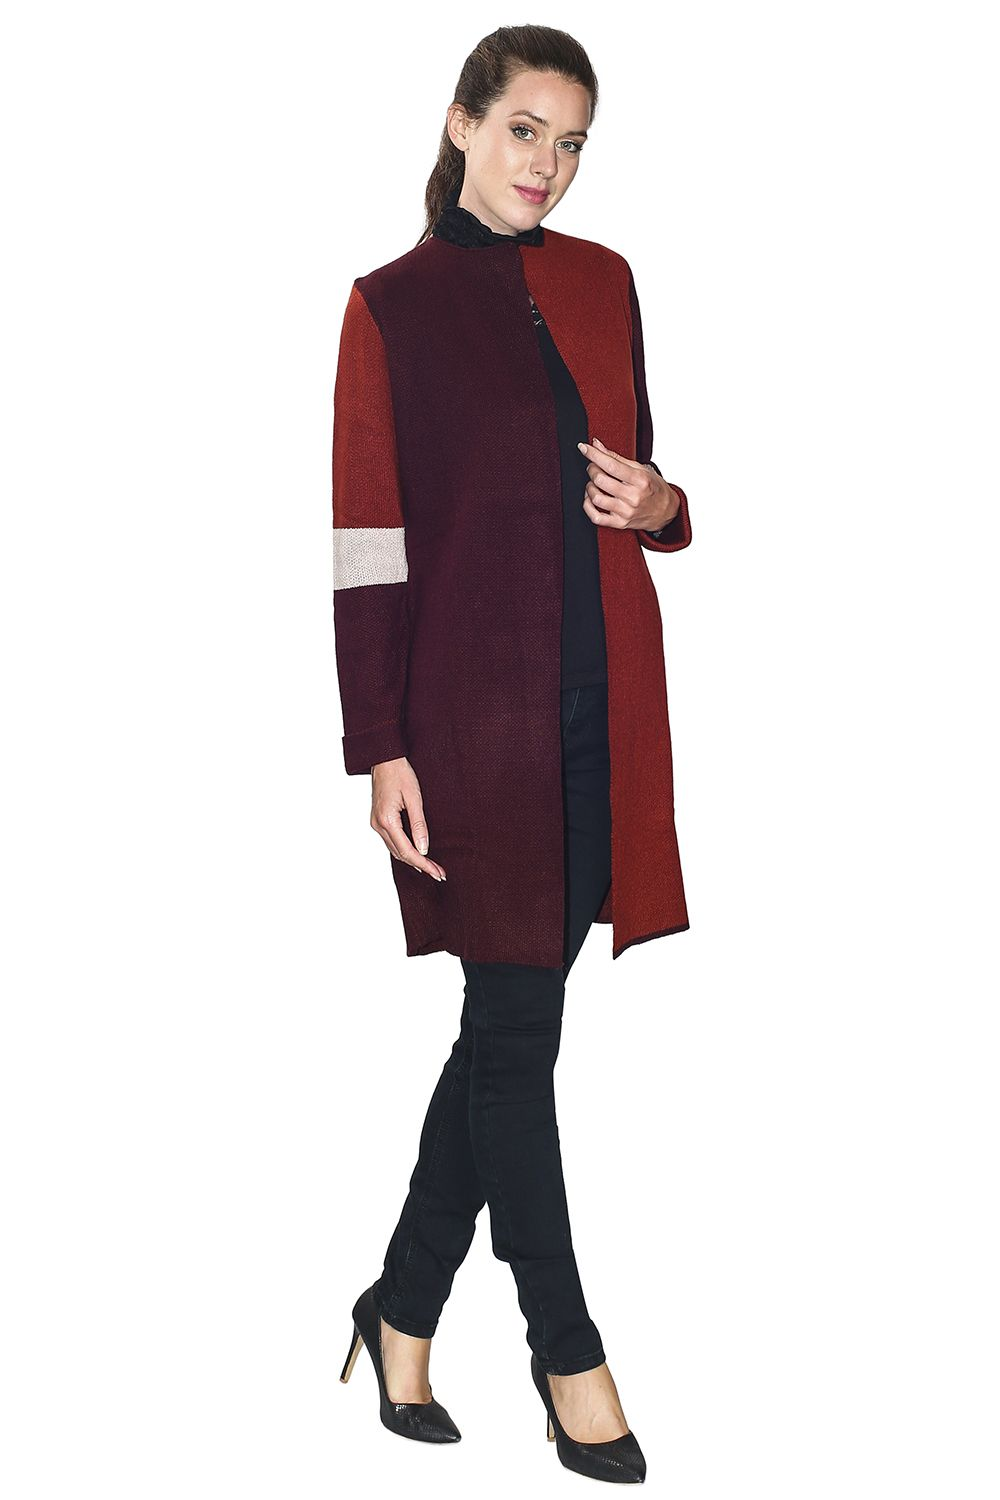 Assuili Long Sleeve Jacquard Patterned Cardigan with Aviator Sleeves and Pockets in Maroon